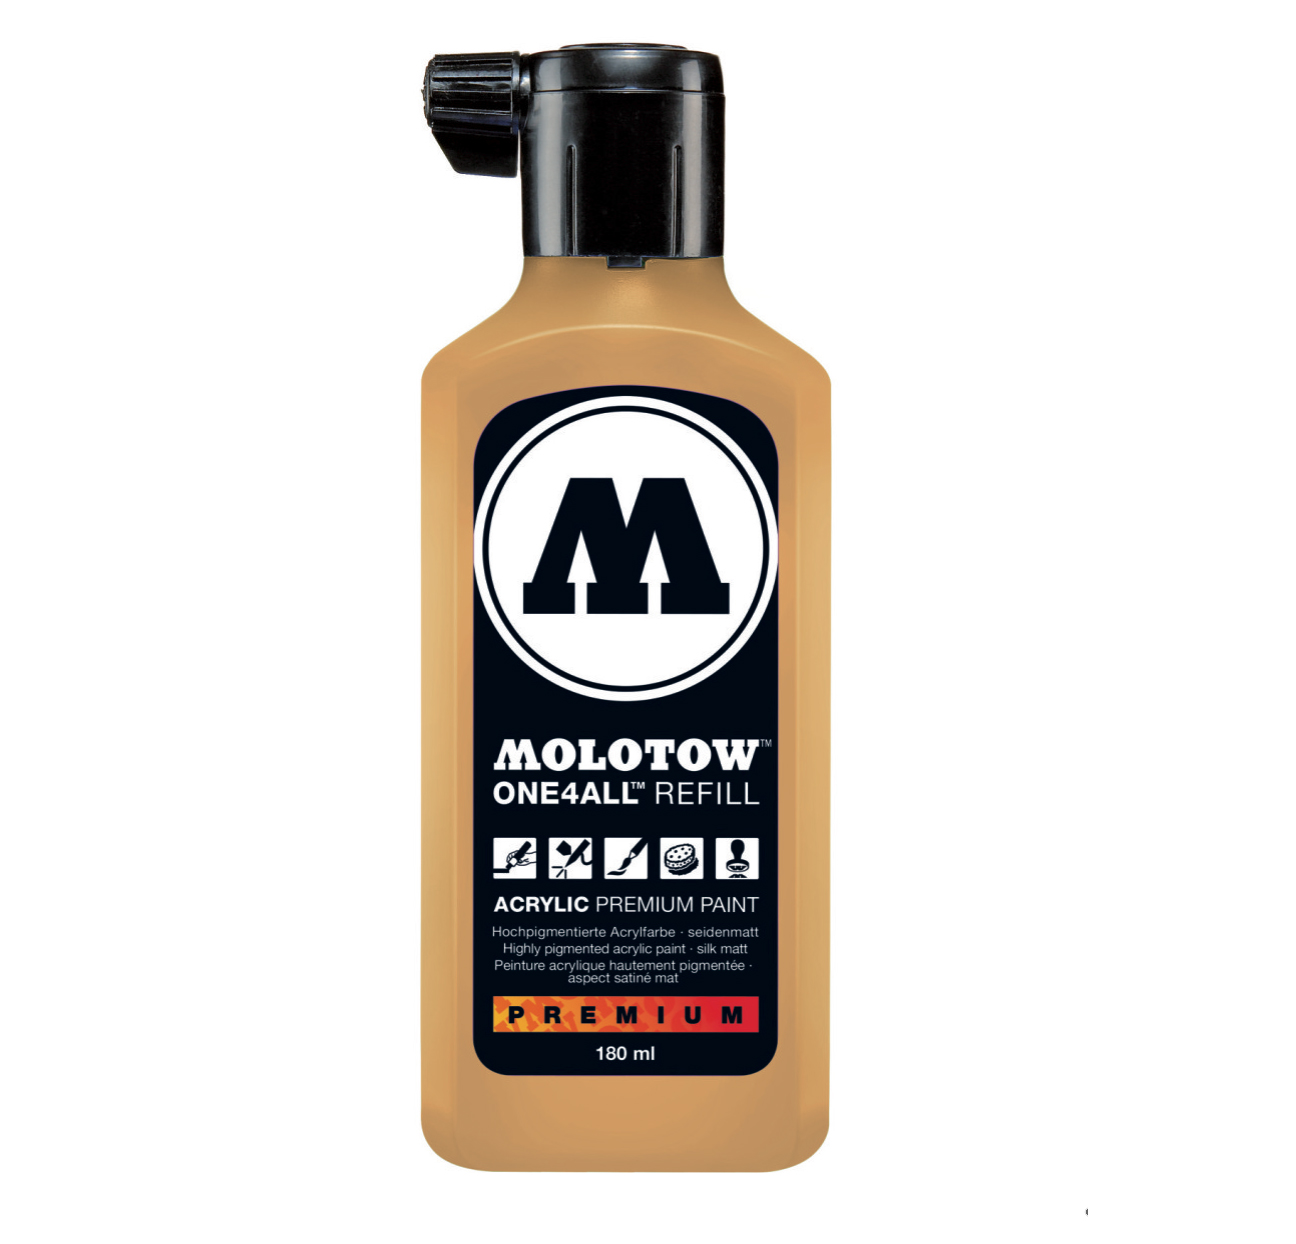 Molotow One4All Refill 180Ml Sahara Bge Pstl